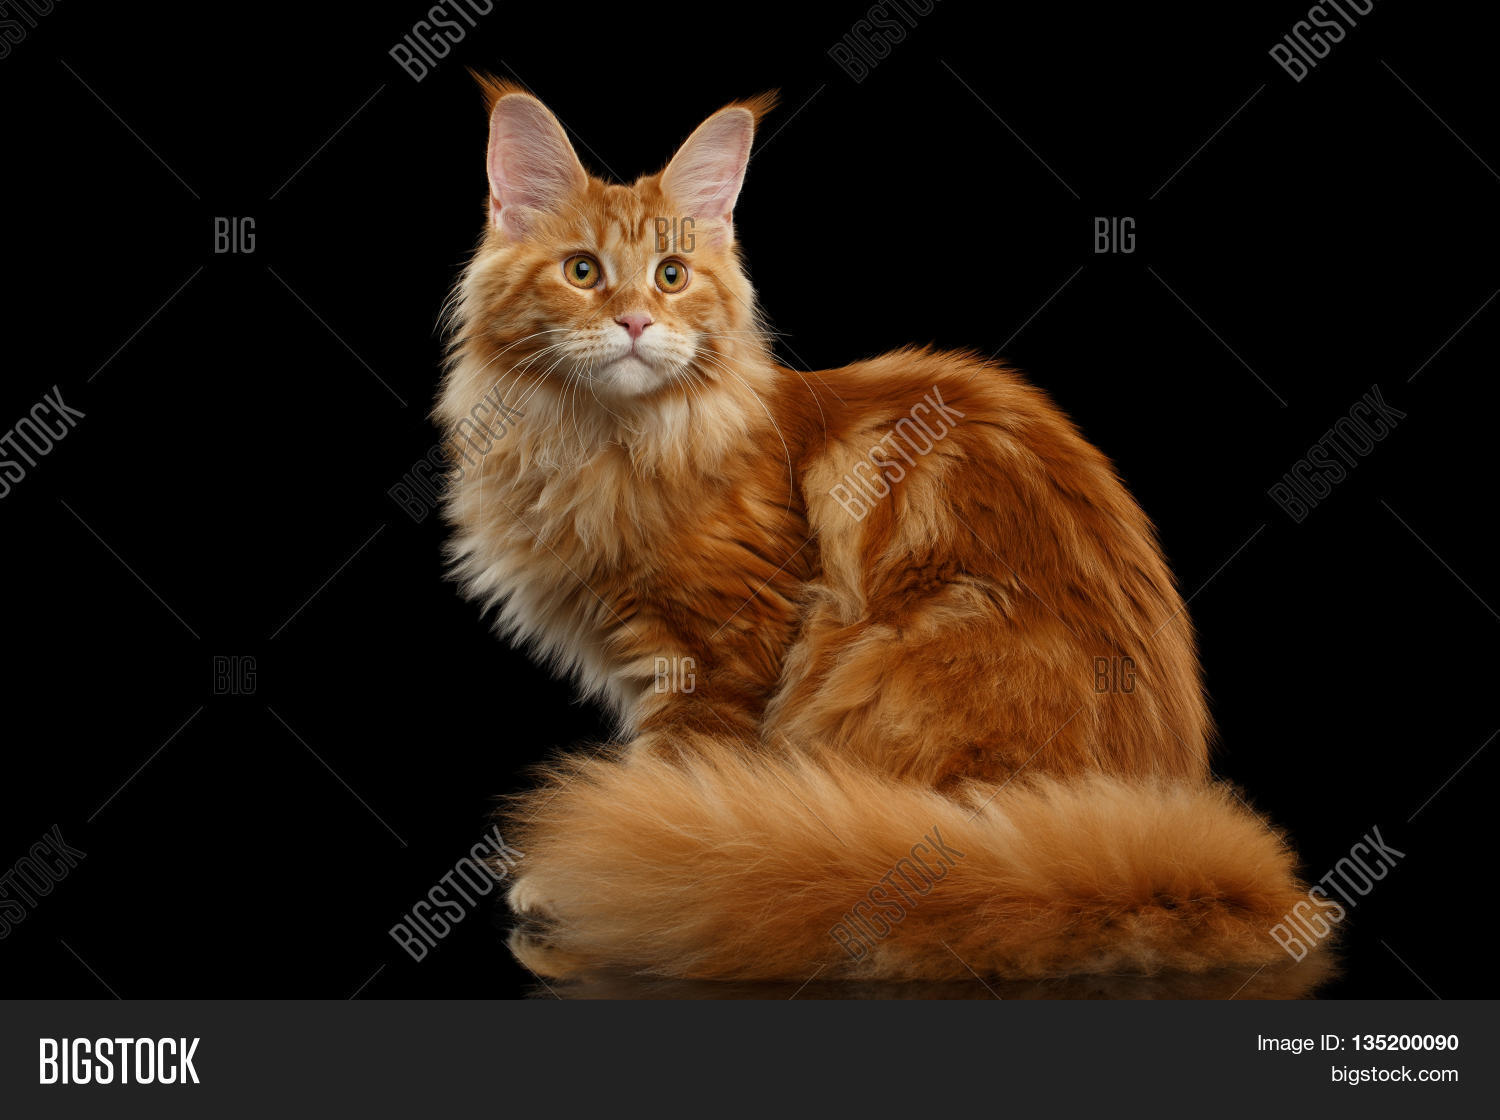 Beautiful Red Maine Coon Tabby Cat Image Amp Photo Bigstock